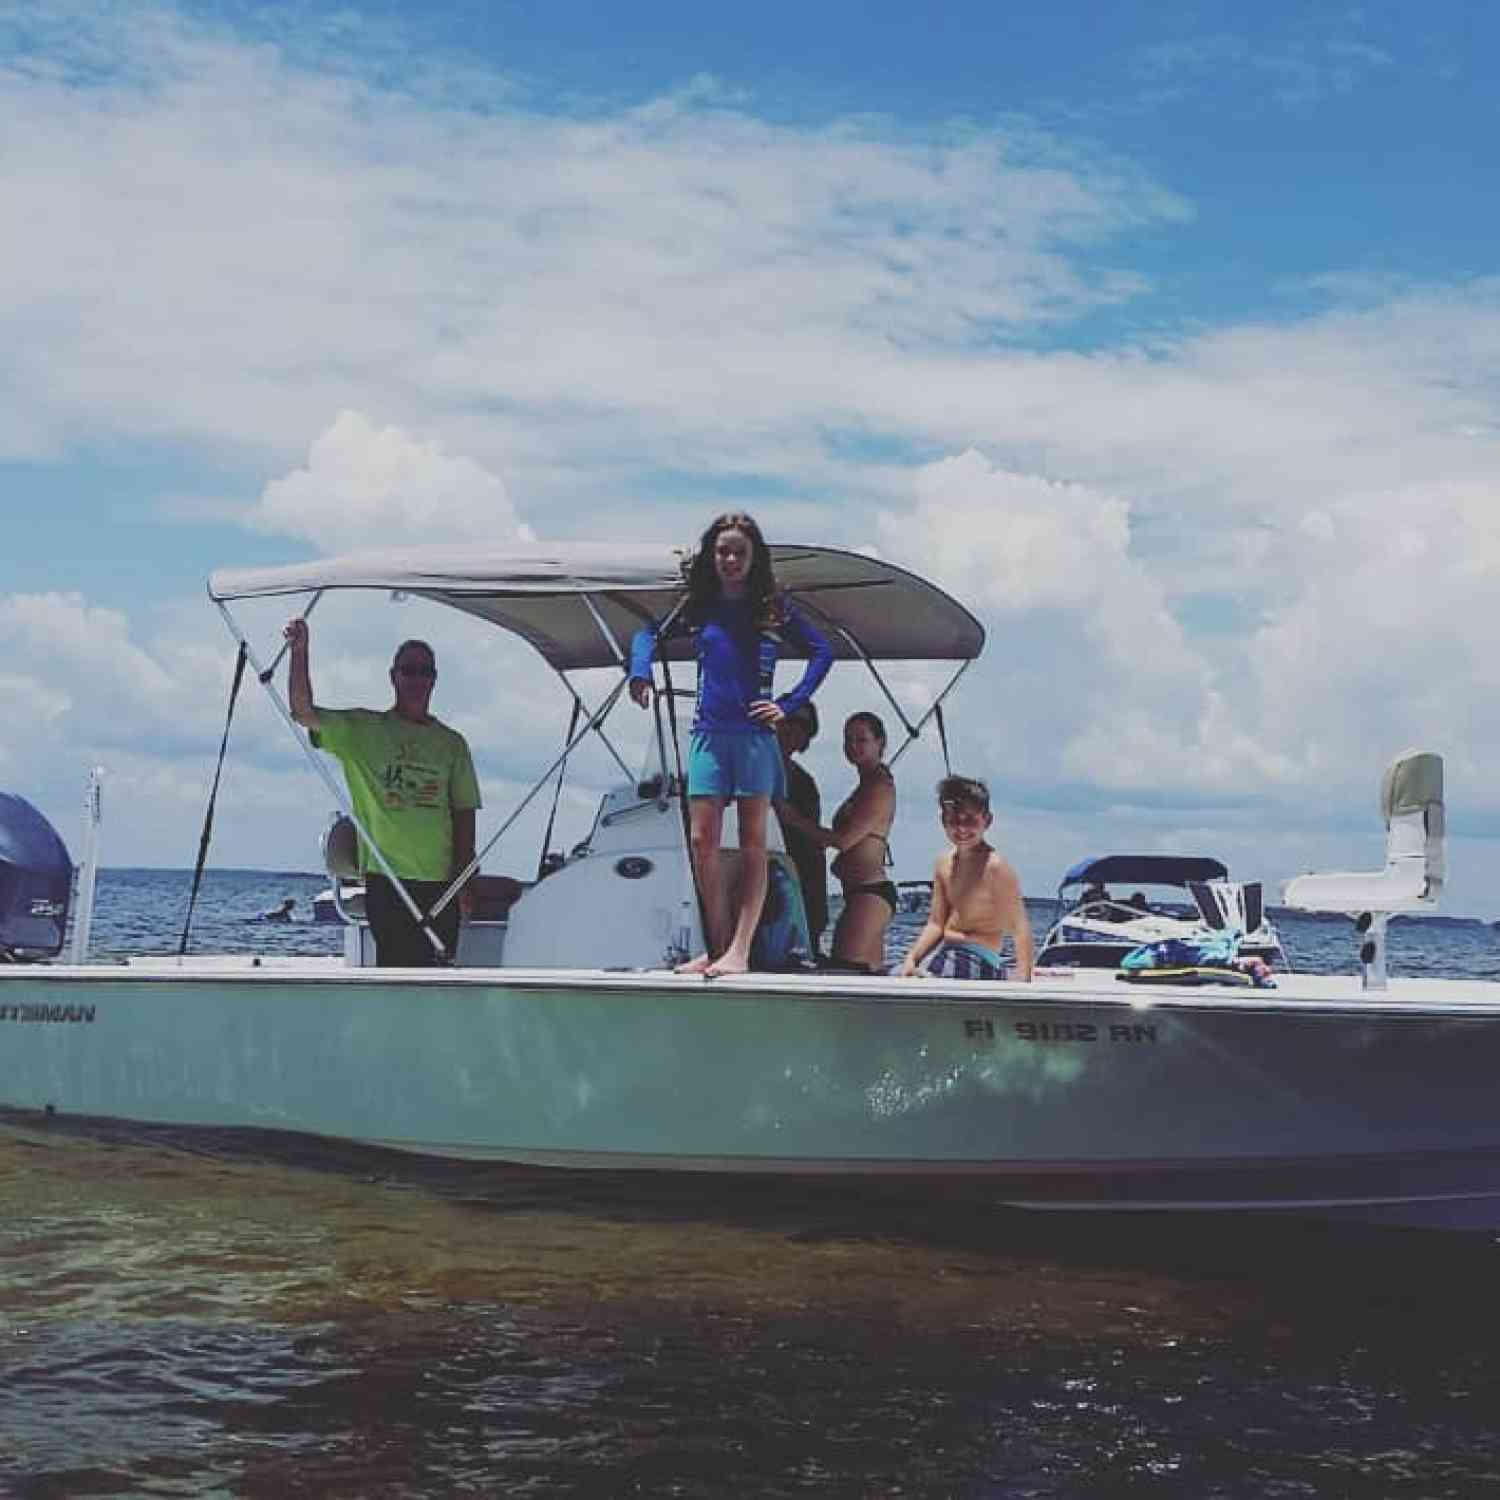 Title: Sportsman Brings Family Together - On board their Sportsman Masters 247 Bay Boat - Location: St. Mark's. Participating in the Photo Contest #SportsmanJune2018